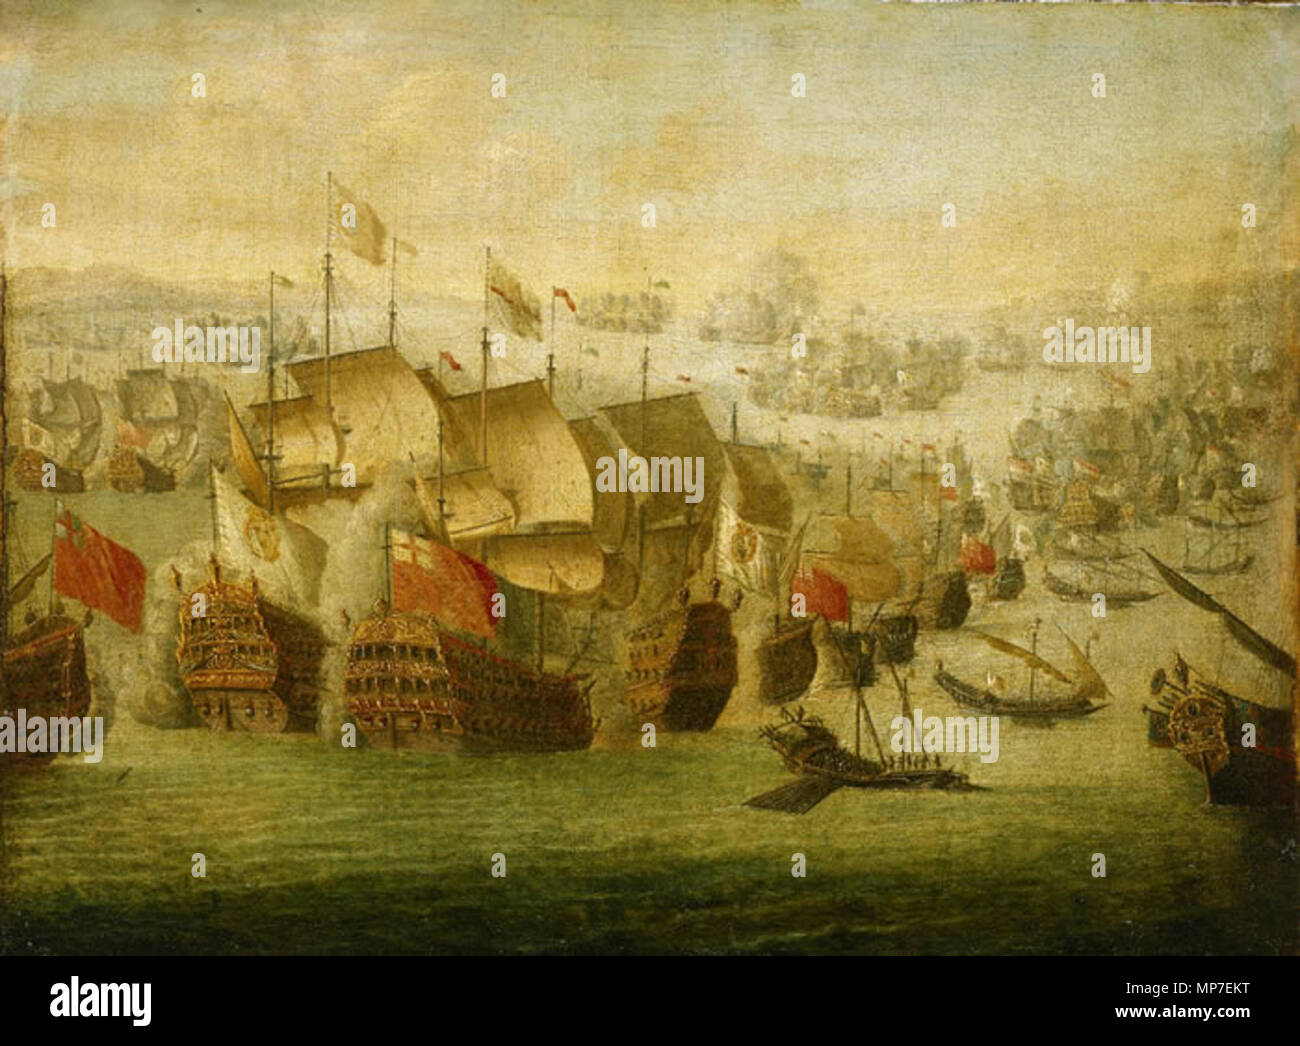 English: The Battle of Malaga, 13 August 1704 circa 1704. 674 Isaac  Sailmaker - The Battle of Malaga, 13 August 1704